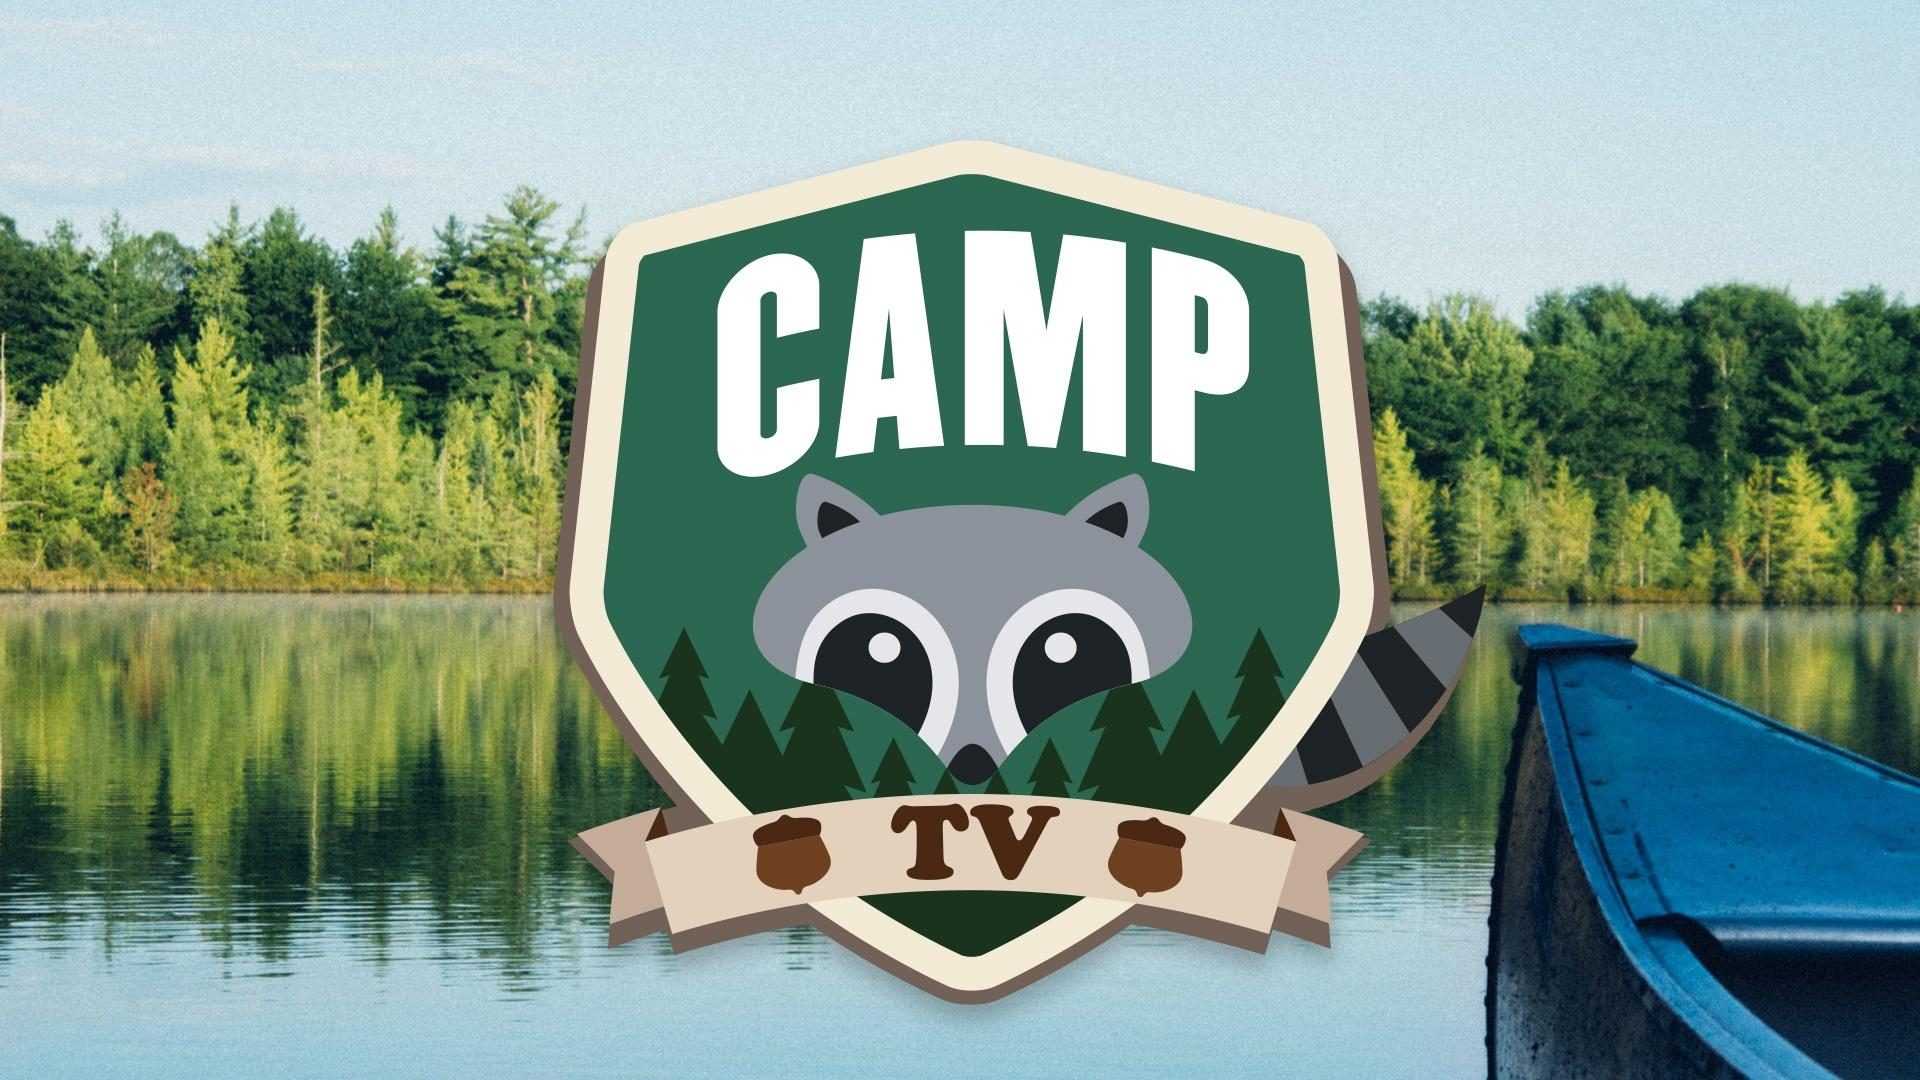 A graphic image of green badge with Camp TV written onit and cartoon image of racoon face. It is superimposed over photo of lake with greenery on shore and the tip of boat in foreground.